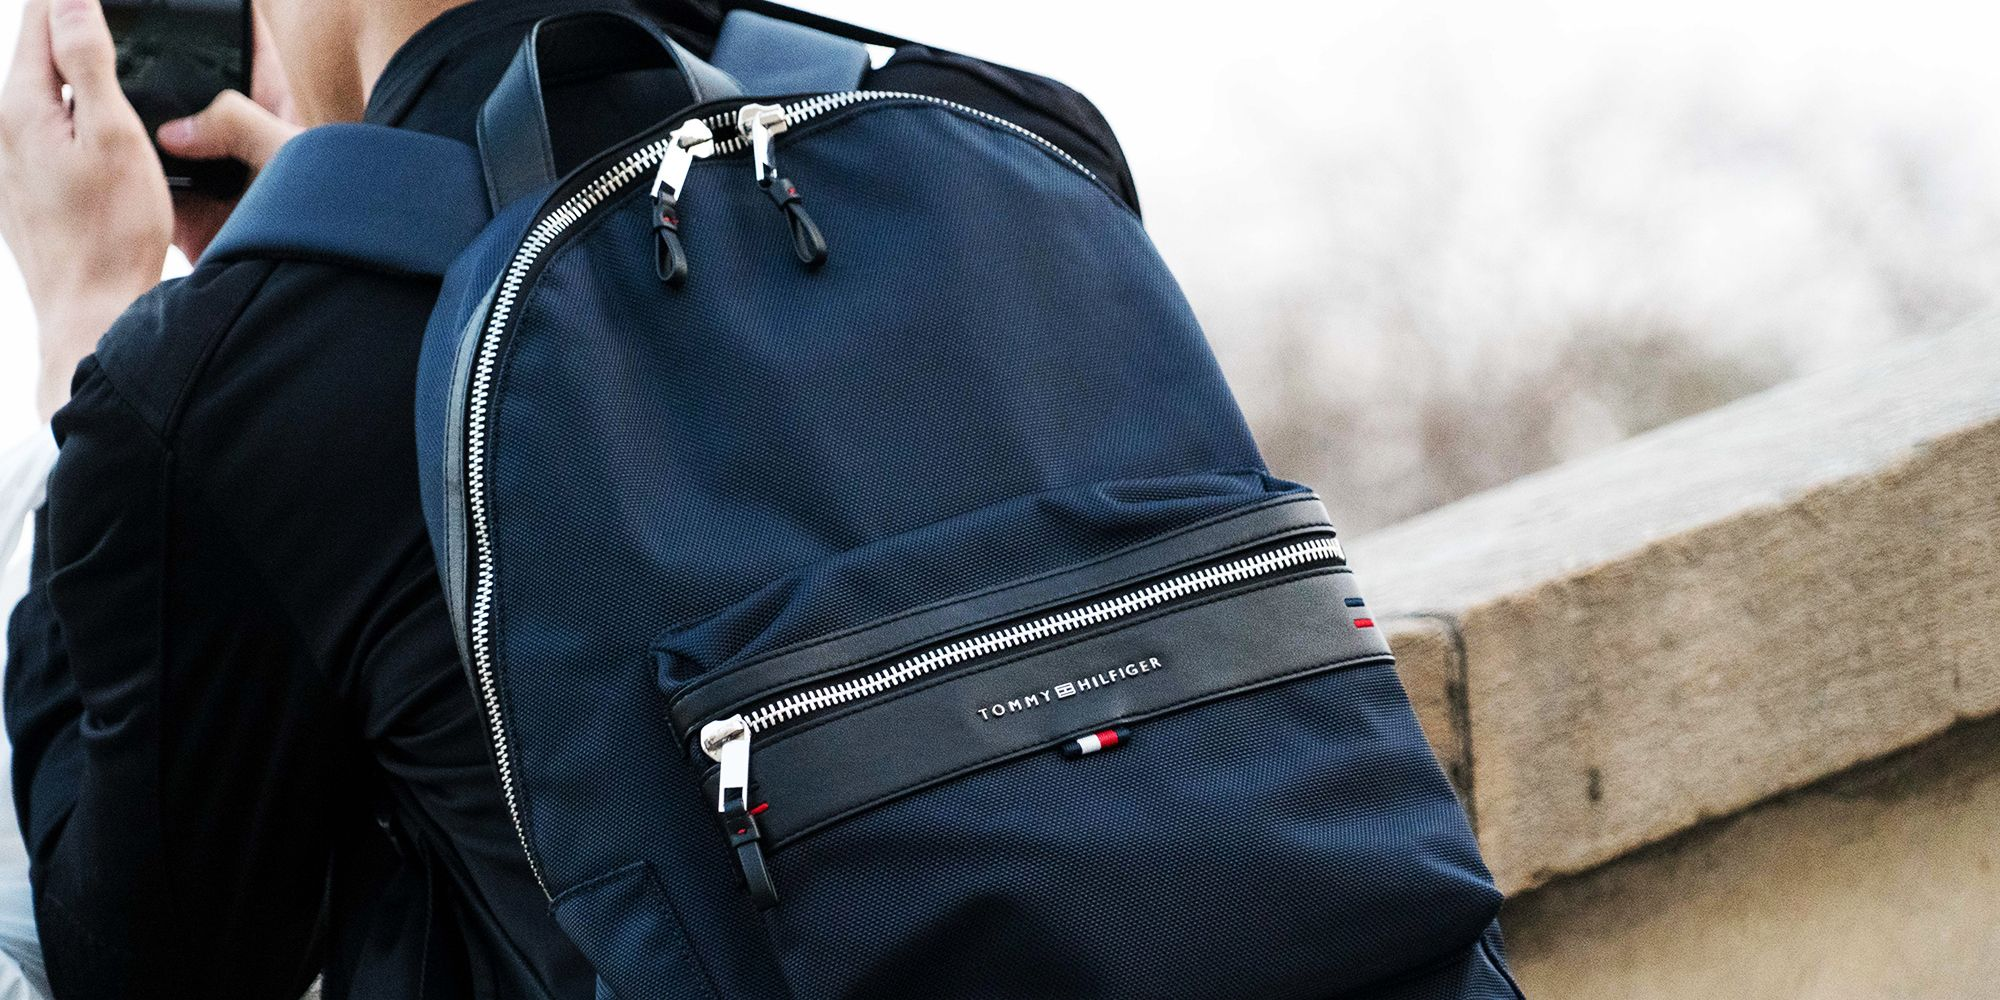 16 Grown-Up Backpacks That Won't Make You Look Like a Schoolkid